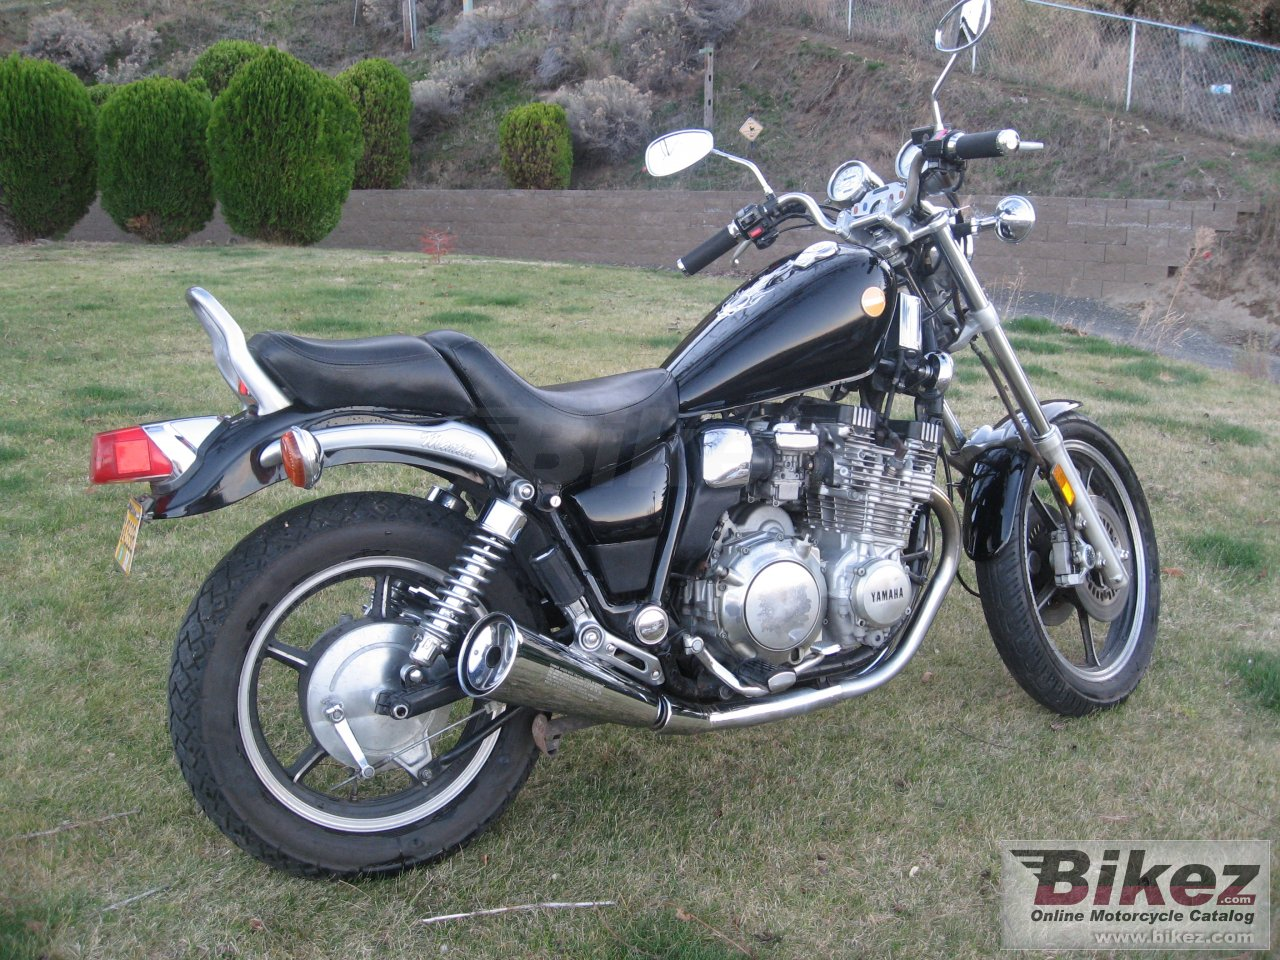 1985 Yamaha Xj700 Bobber Motorcycles Xj Maxim Wiring Diagram 700 N Specifications And Pictures